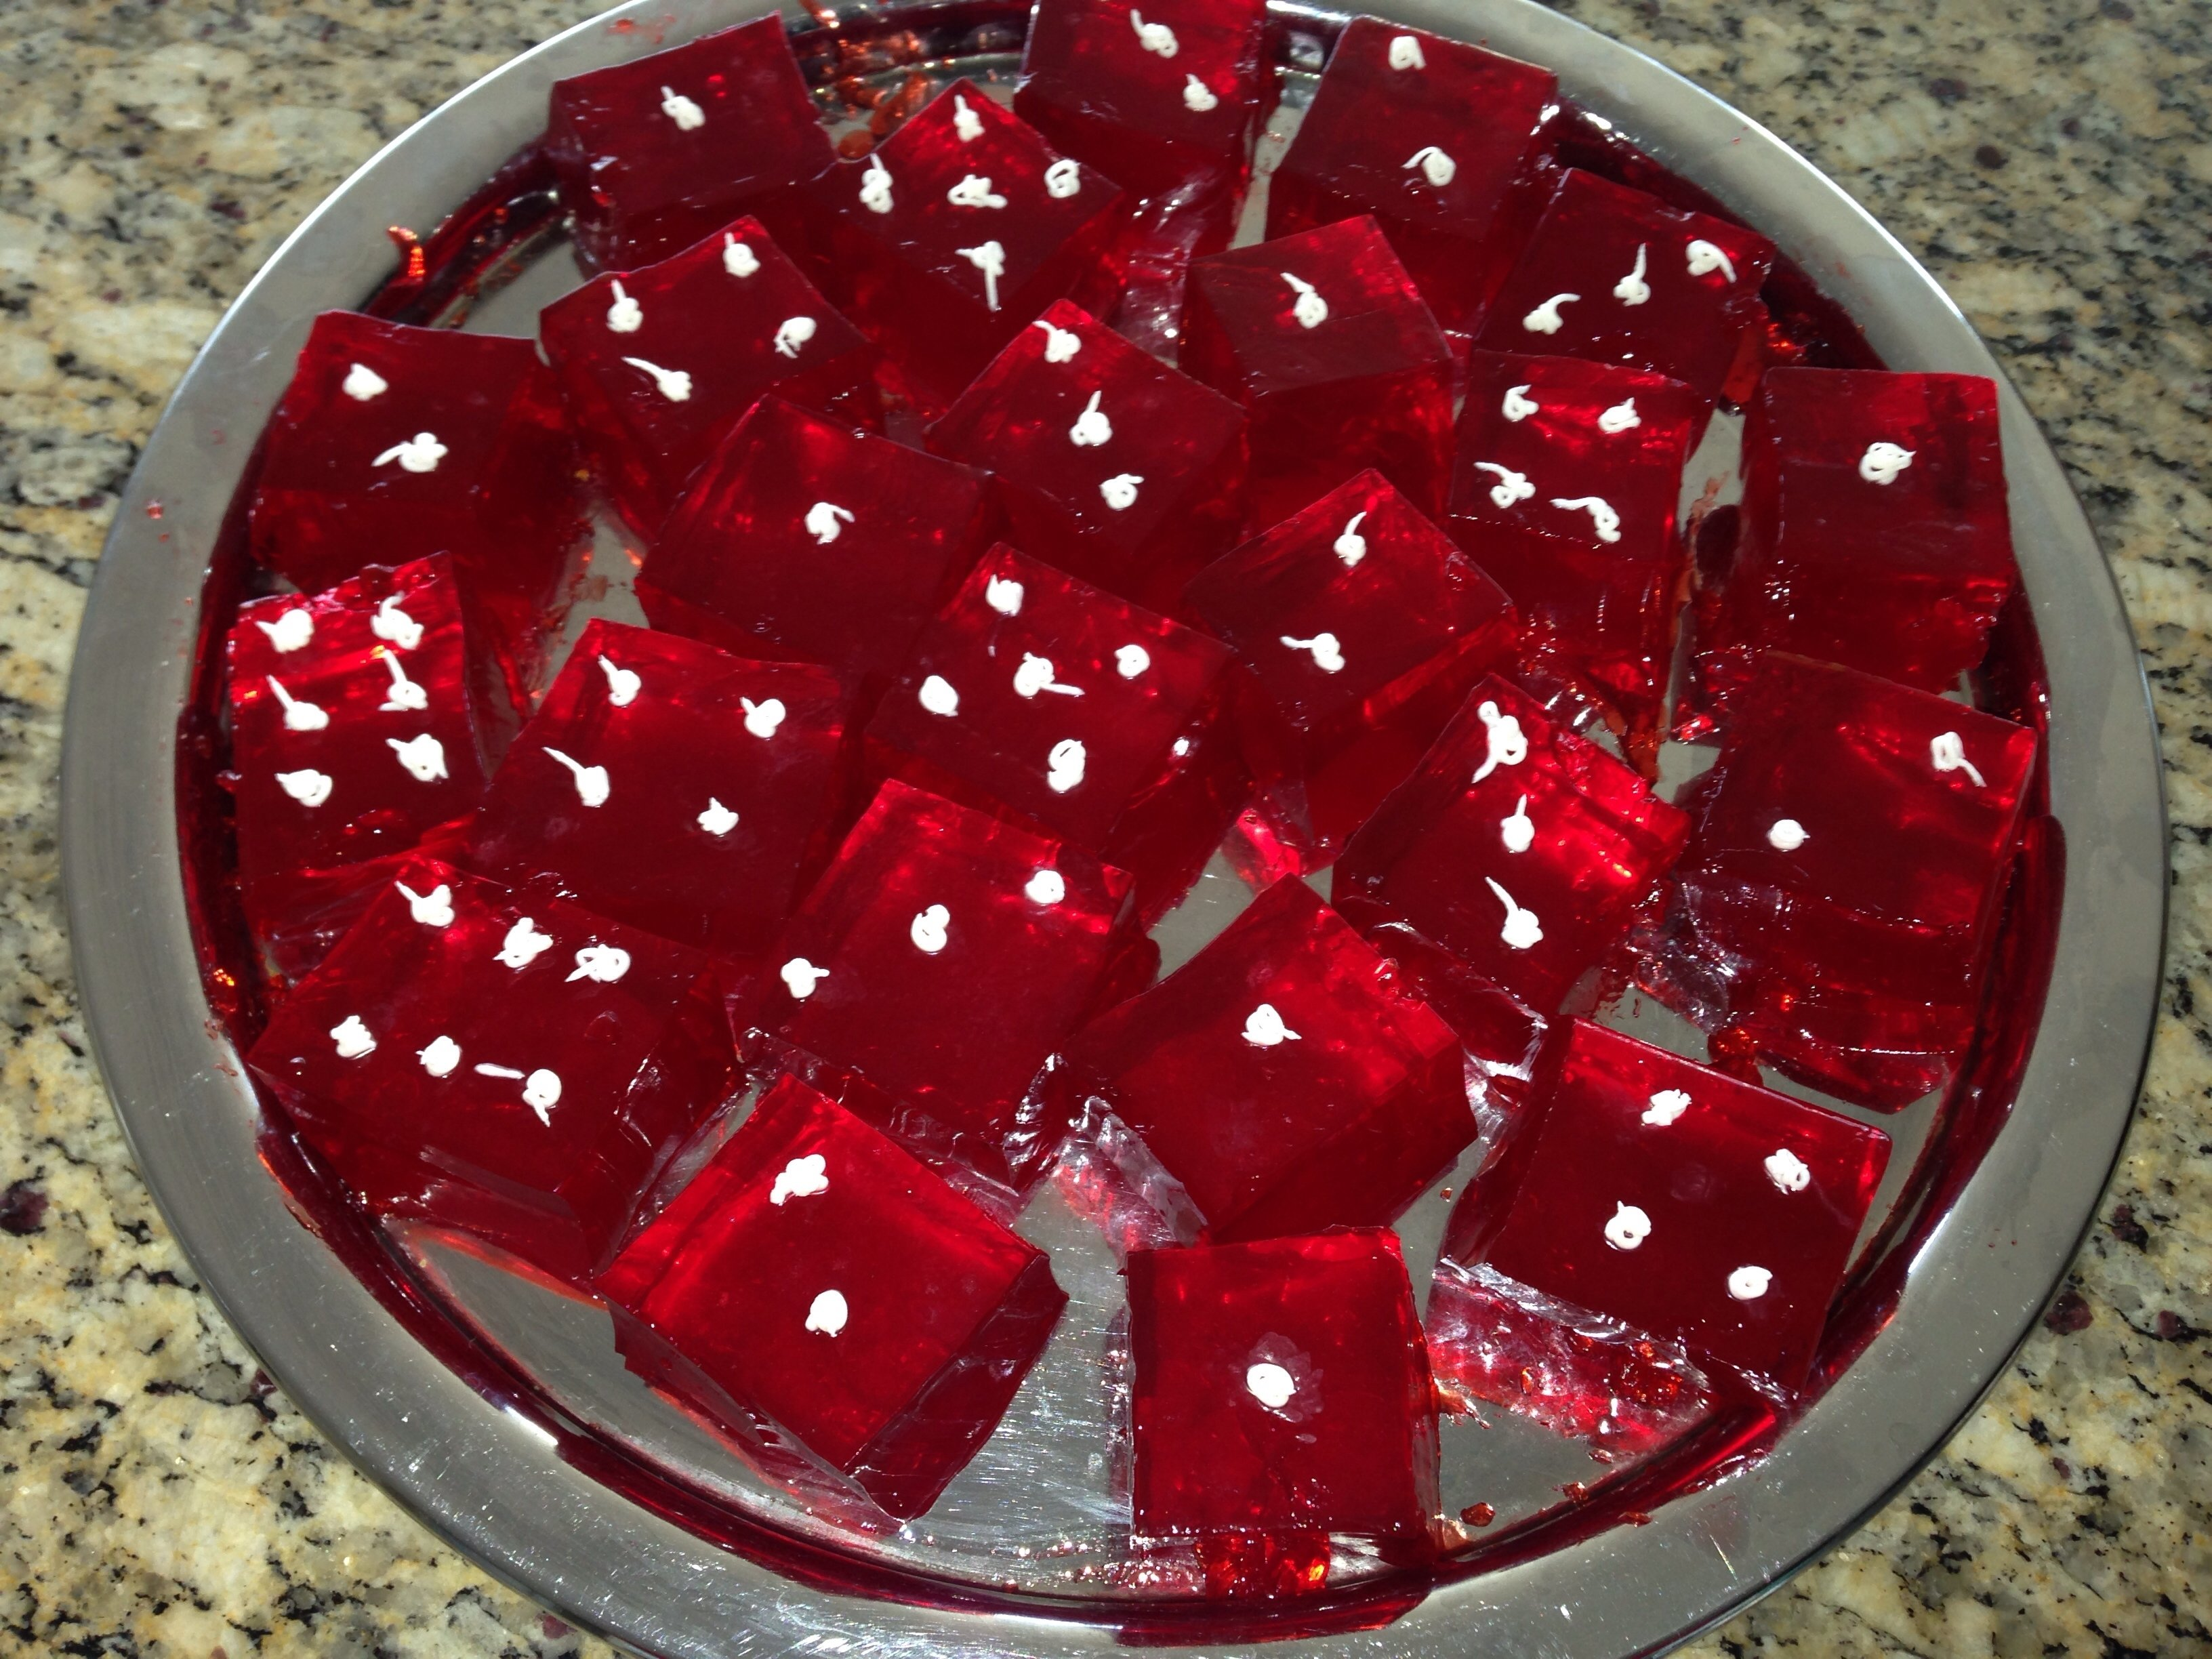 10 Perfect Casino Party Ideas For Adults dice jell o shots for casino party or game night gamenight casino 2021